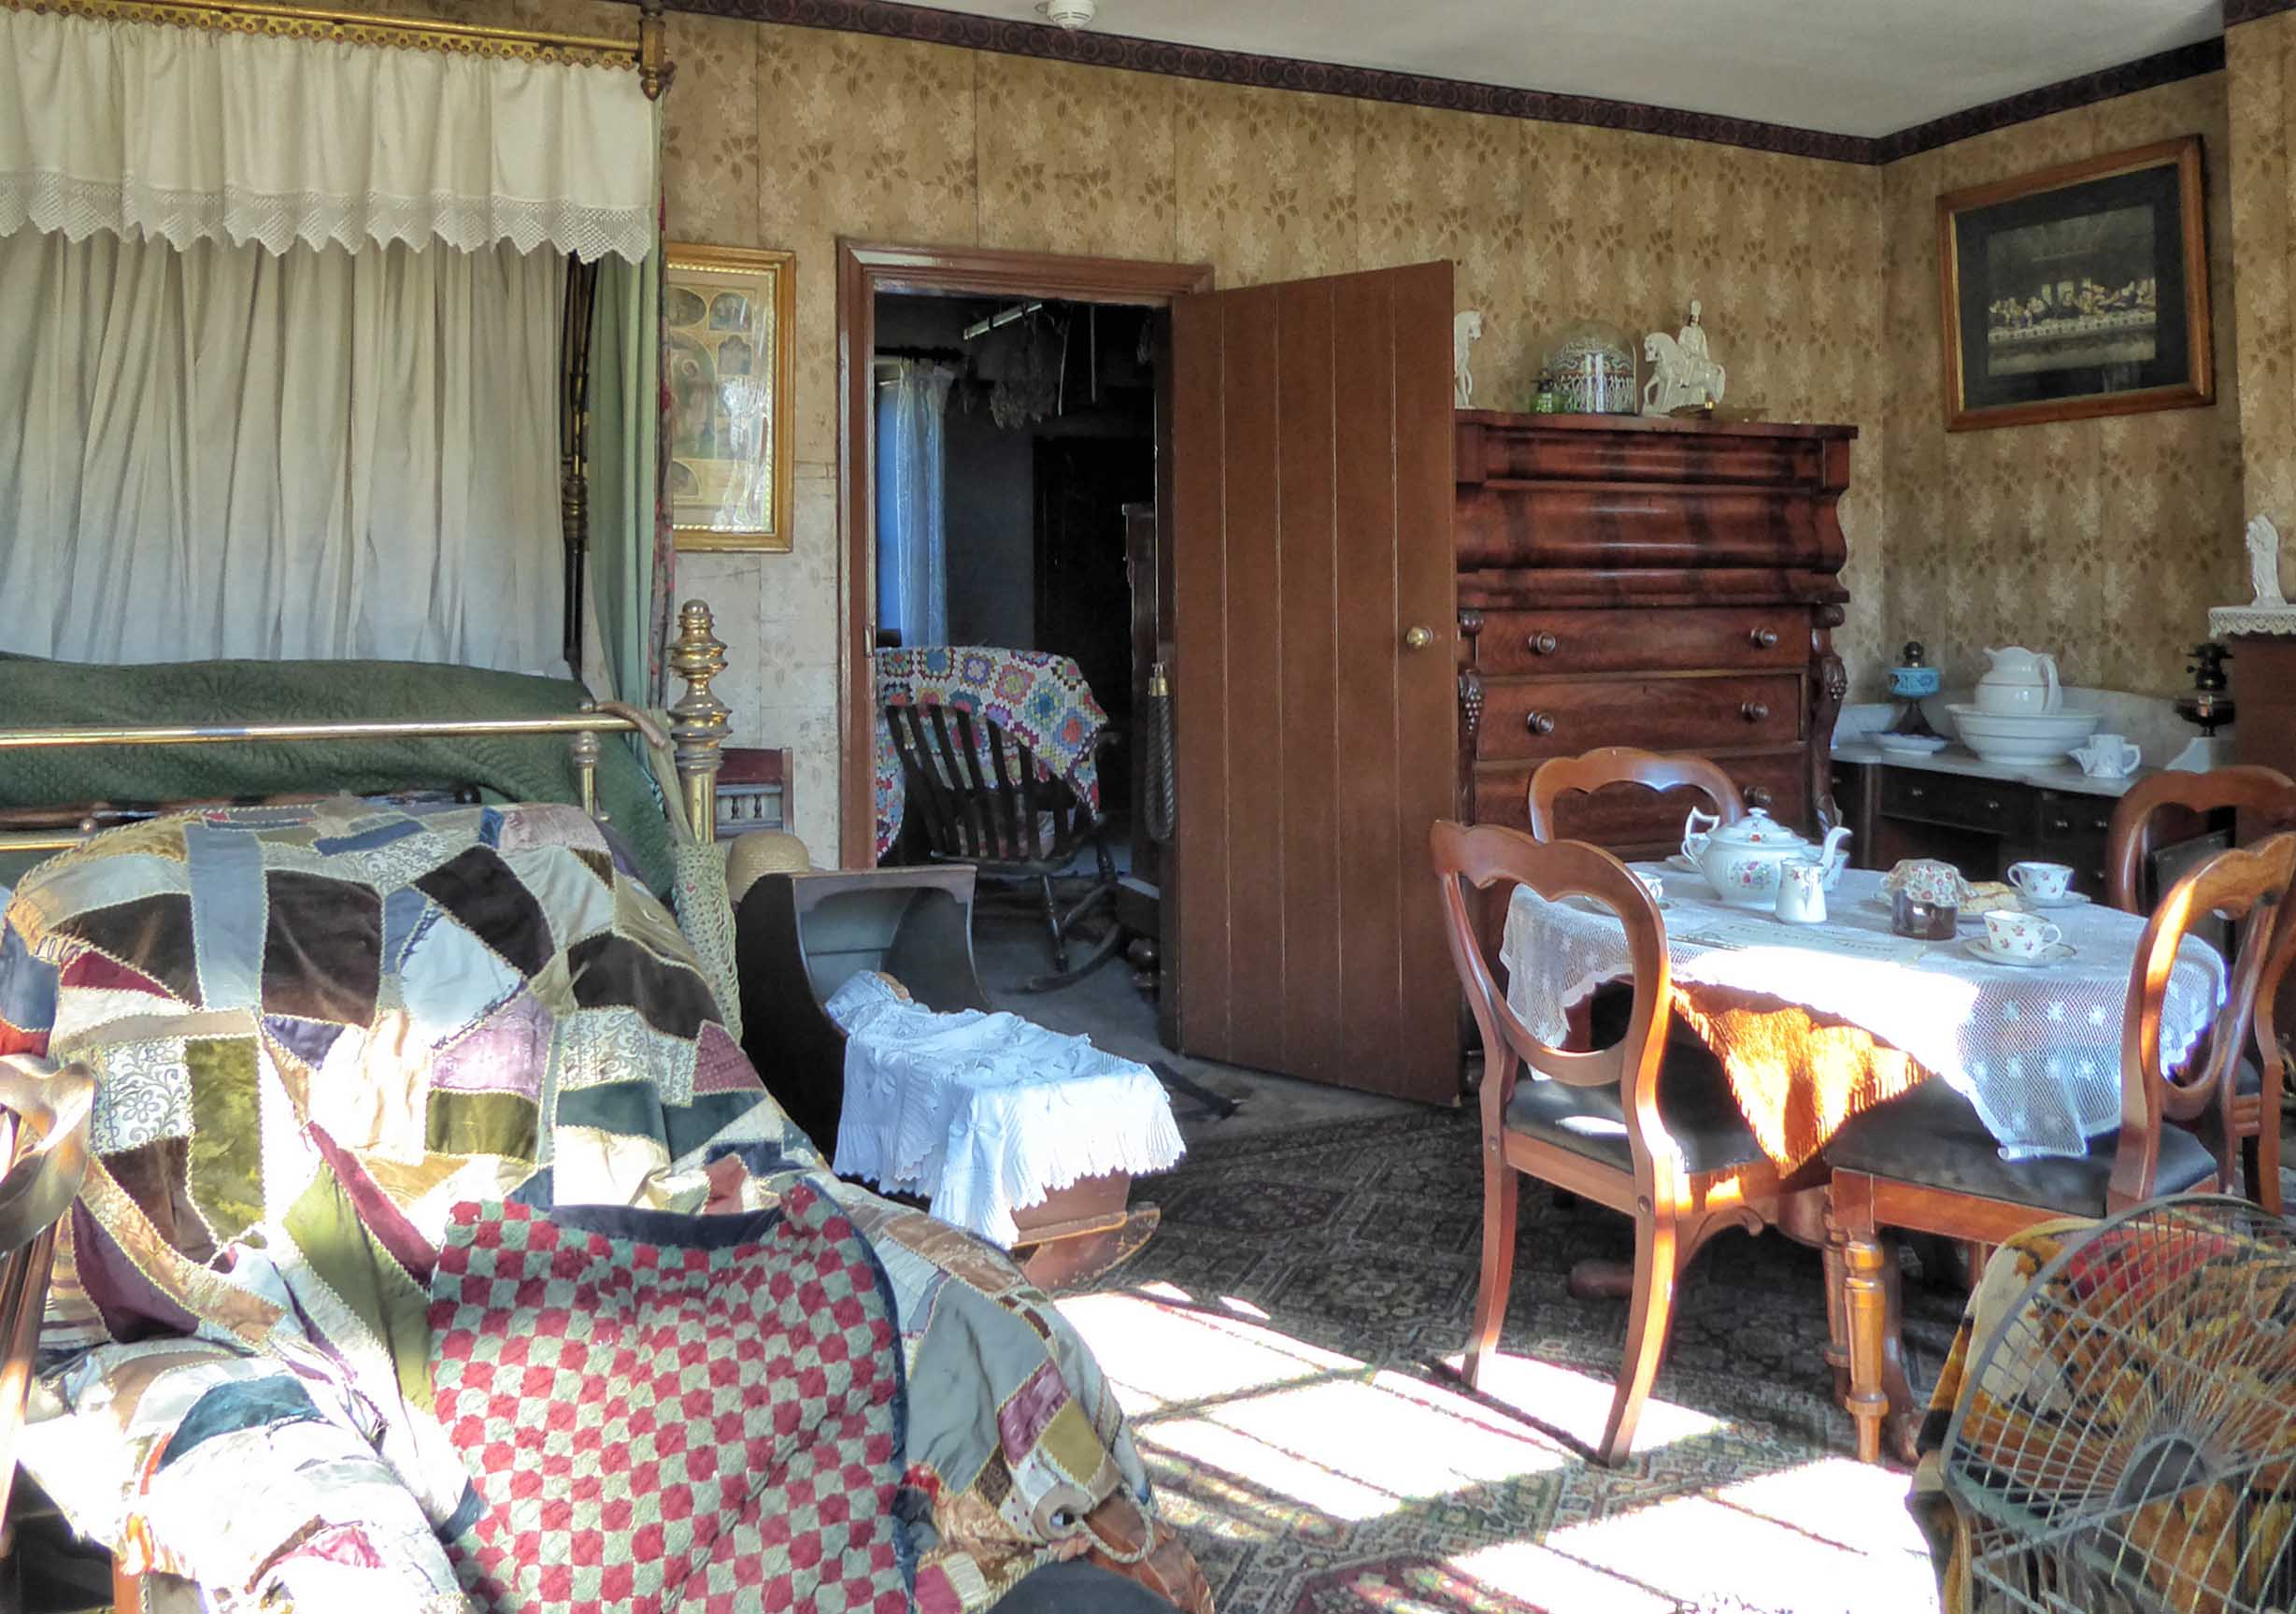 Old-fashioned sitting room with bed, cot, table and chairs